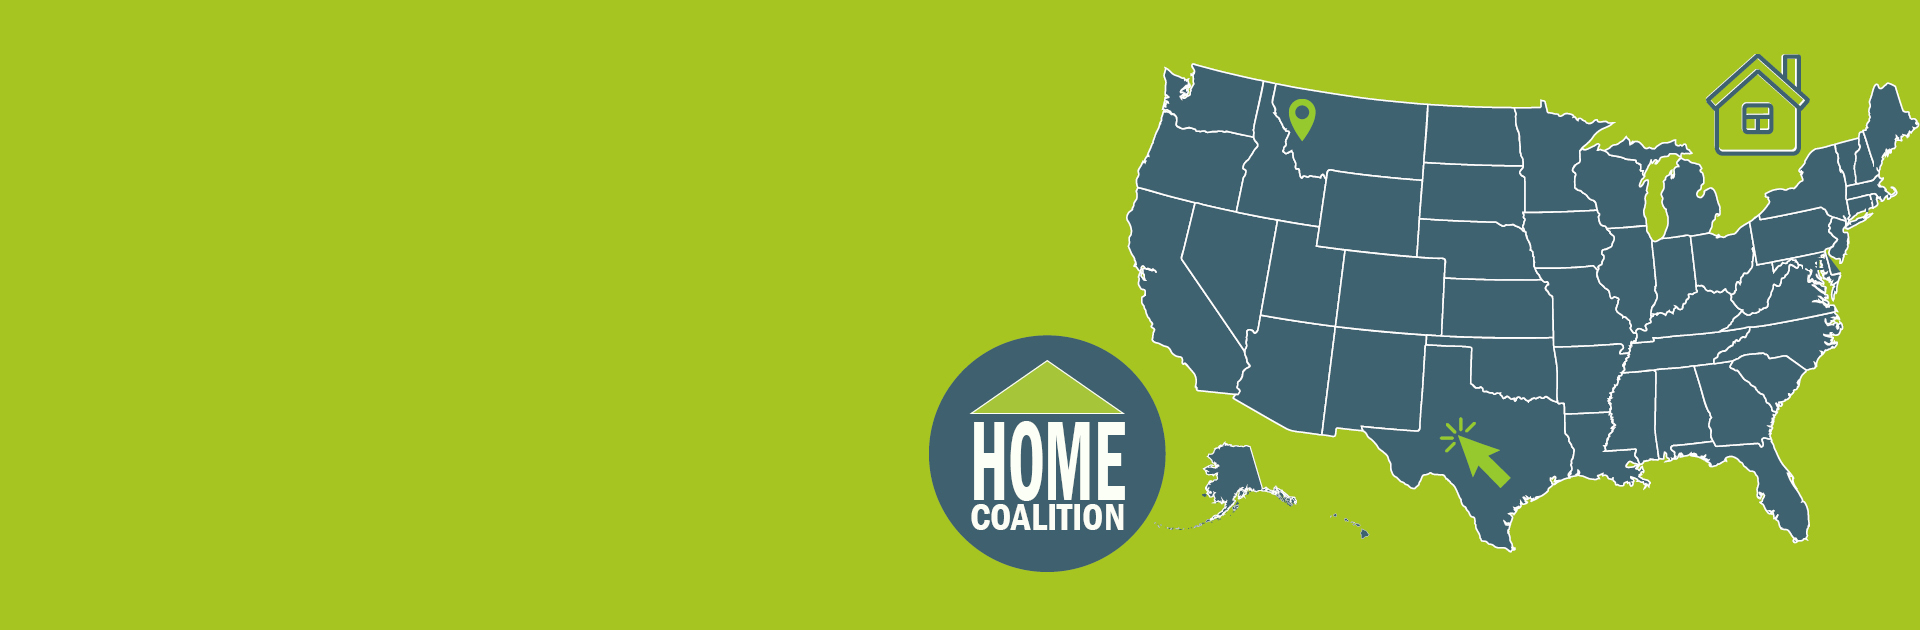 HOME Slider by State